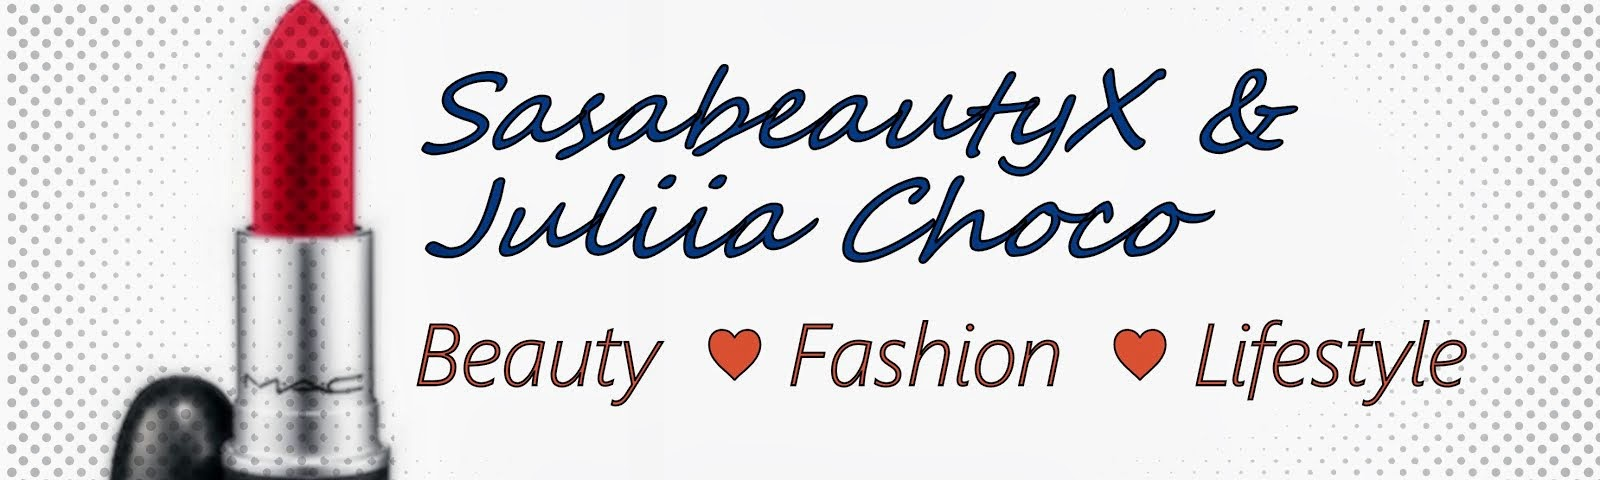 Sasabeautyx und Juliia Chocos Beauty&Fashion Blog